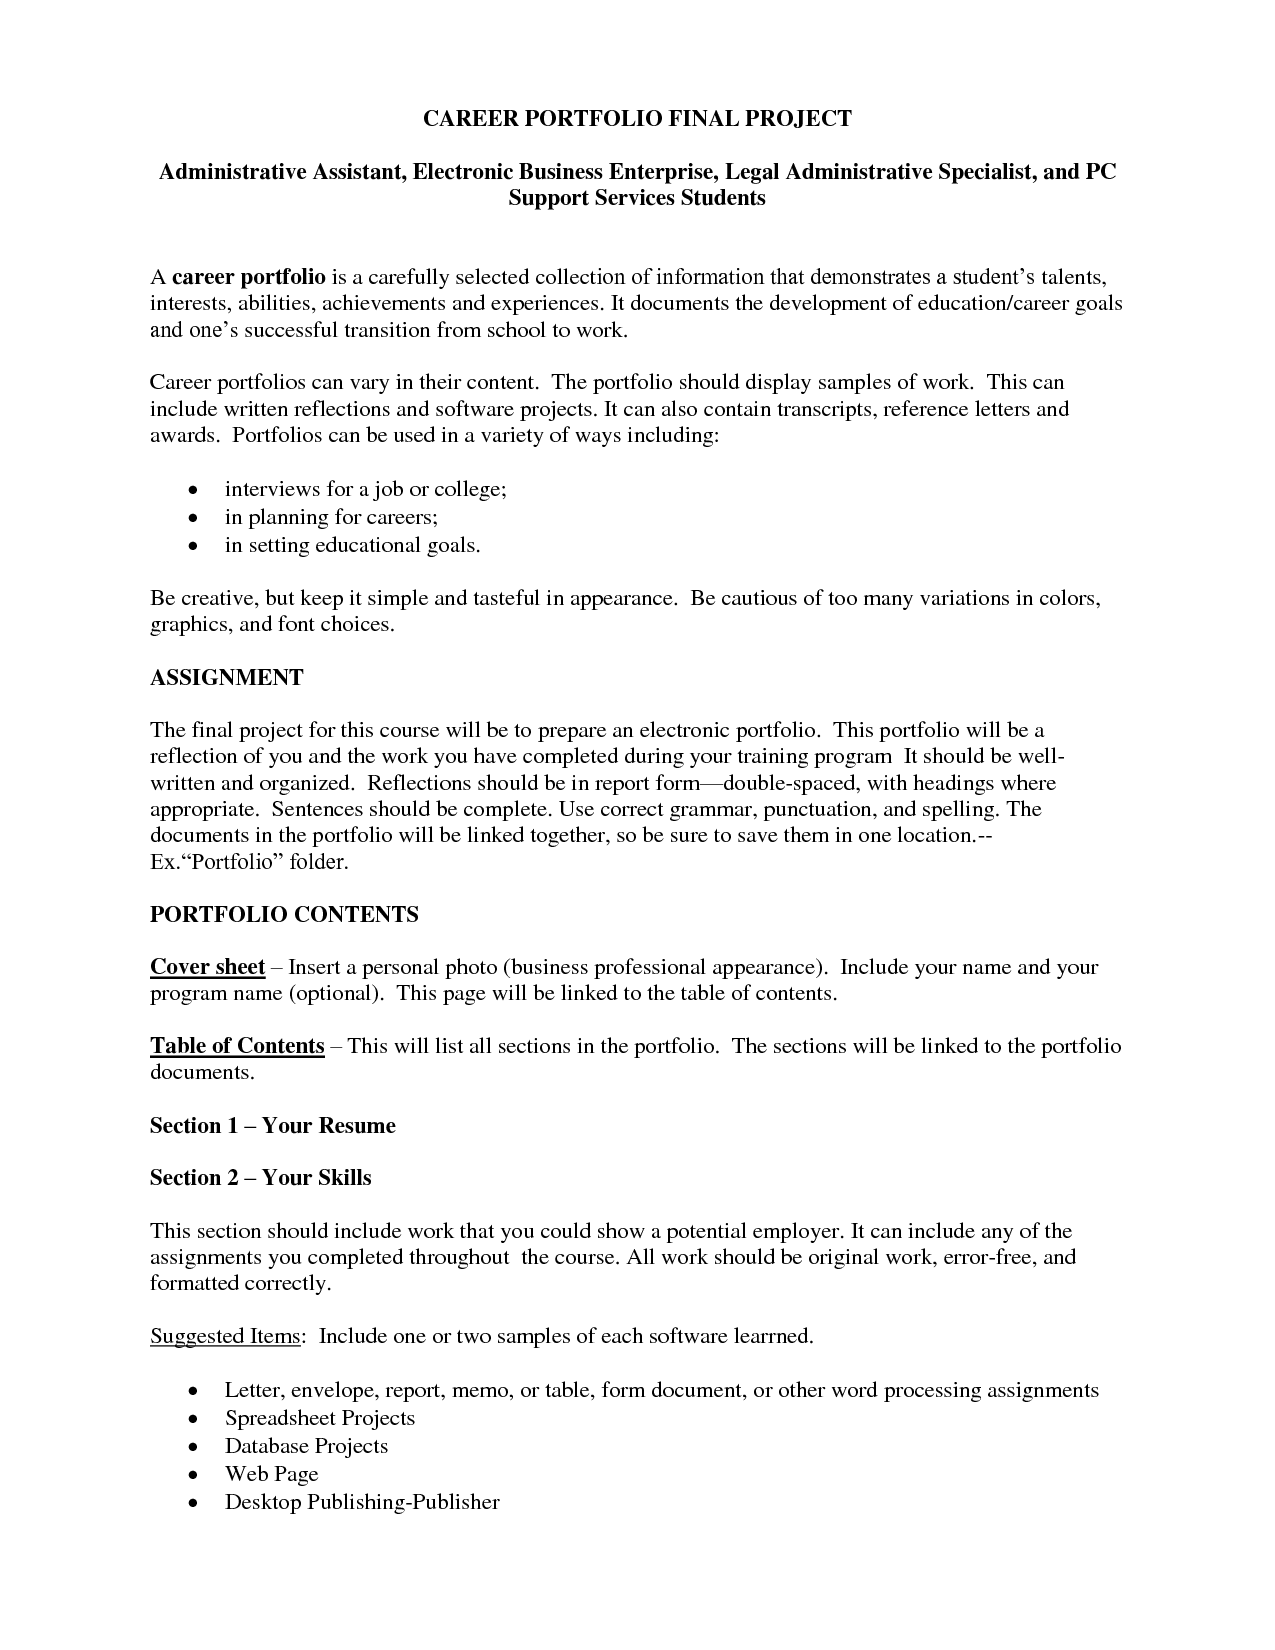 Legal Administrative Resume Samples   Http://ersume.com/legal Administrative